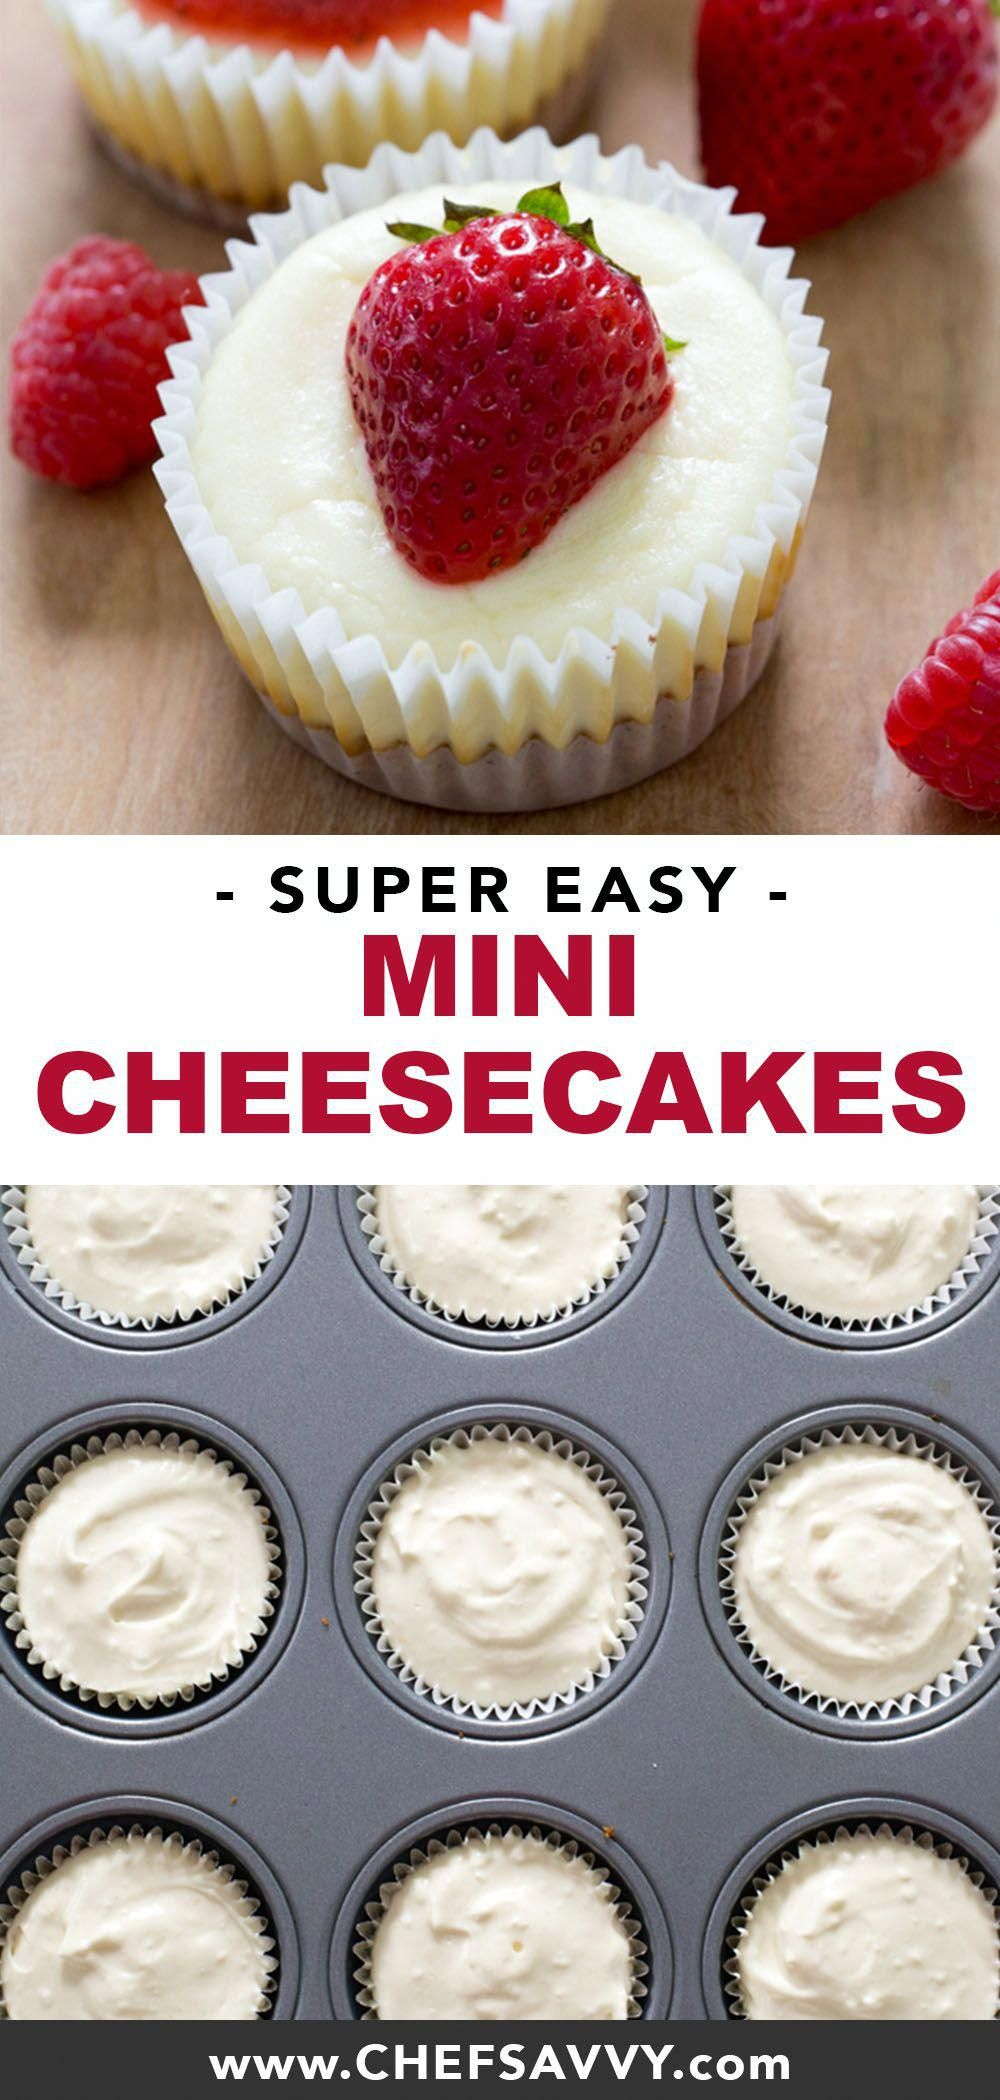 Mini Cheesecake Cupcakes: your favourite layered dessert in miniature form! A crunchy graham cracker crust, smothered in tangy sweet cream cheese, topped with your choice of strawberry or salted caramel sauce, this bite-sized make ahead delight is sure to be a hit at your next potluck or party! | chefsavvy.com #cheesecake #minicheesecake #cheesecakecupcake #dessert #partyfood #cheesecakedessertseasy